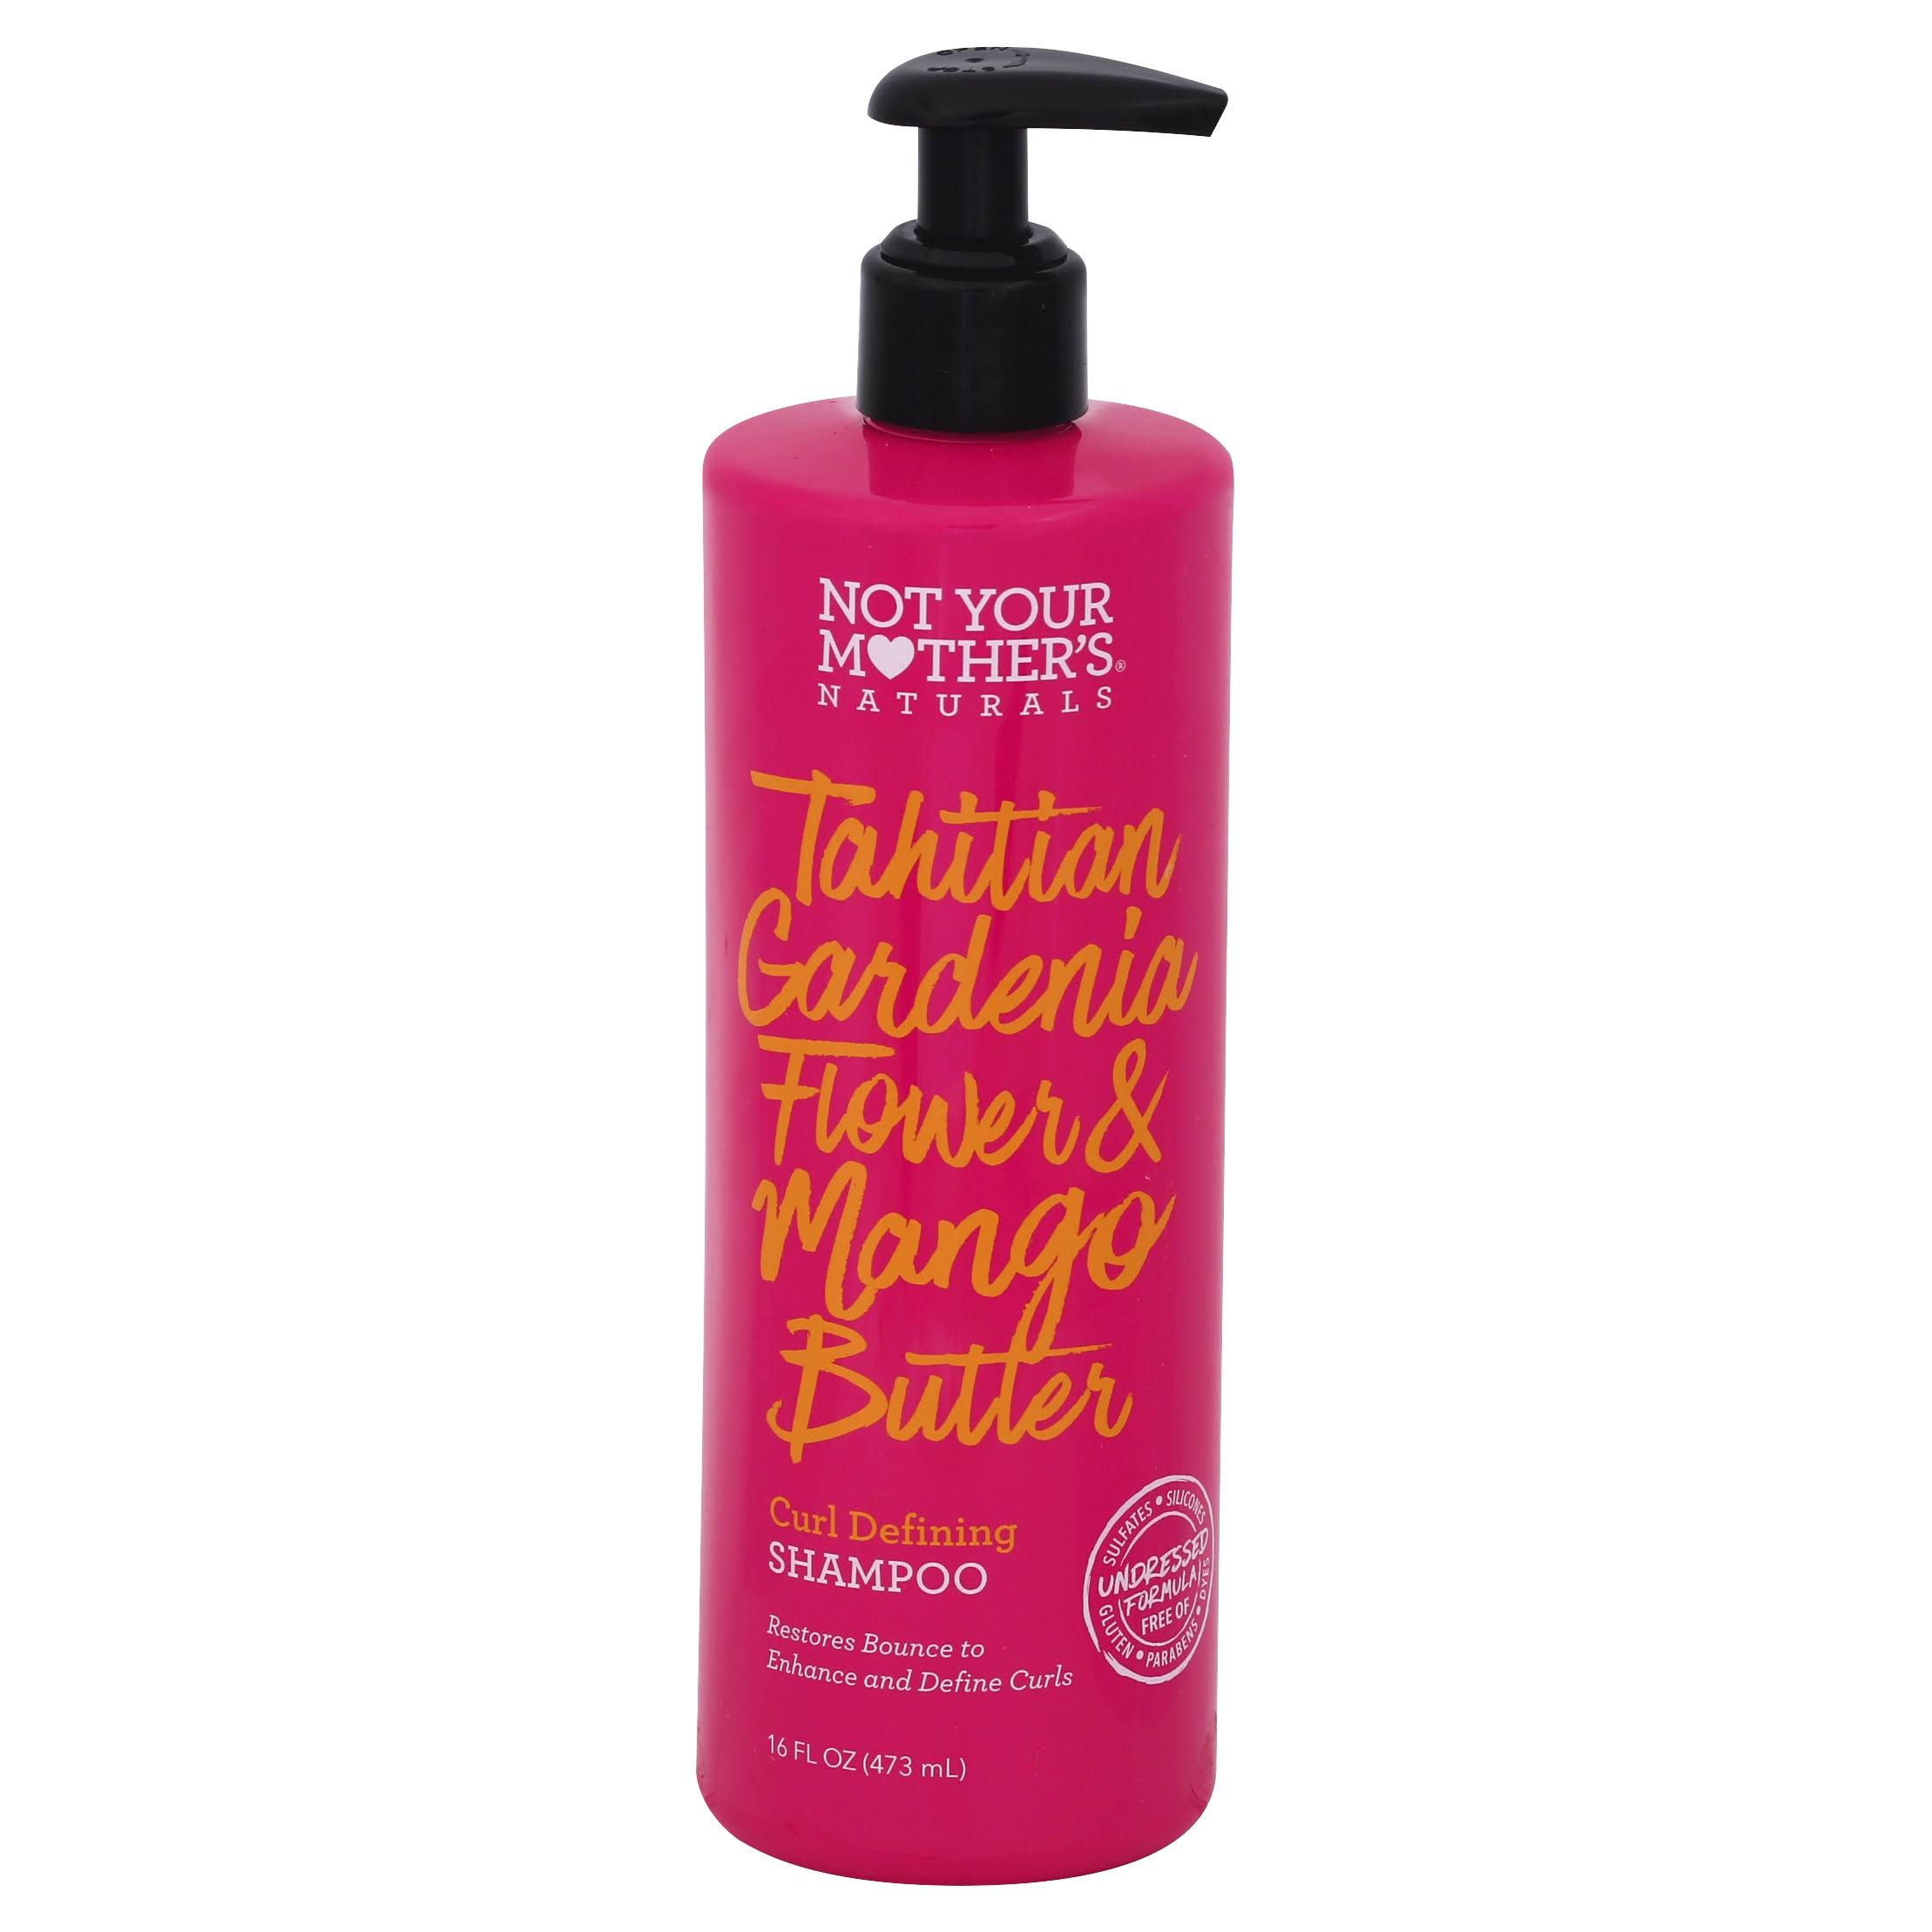 Not Your Mother's Naturals Tahitian Gardenia Flower and Mango Butter Shampoo - 16oz